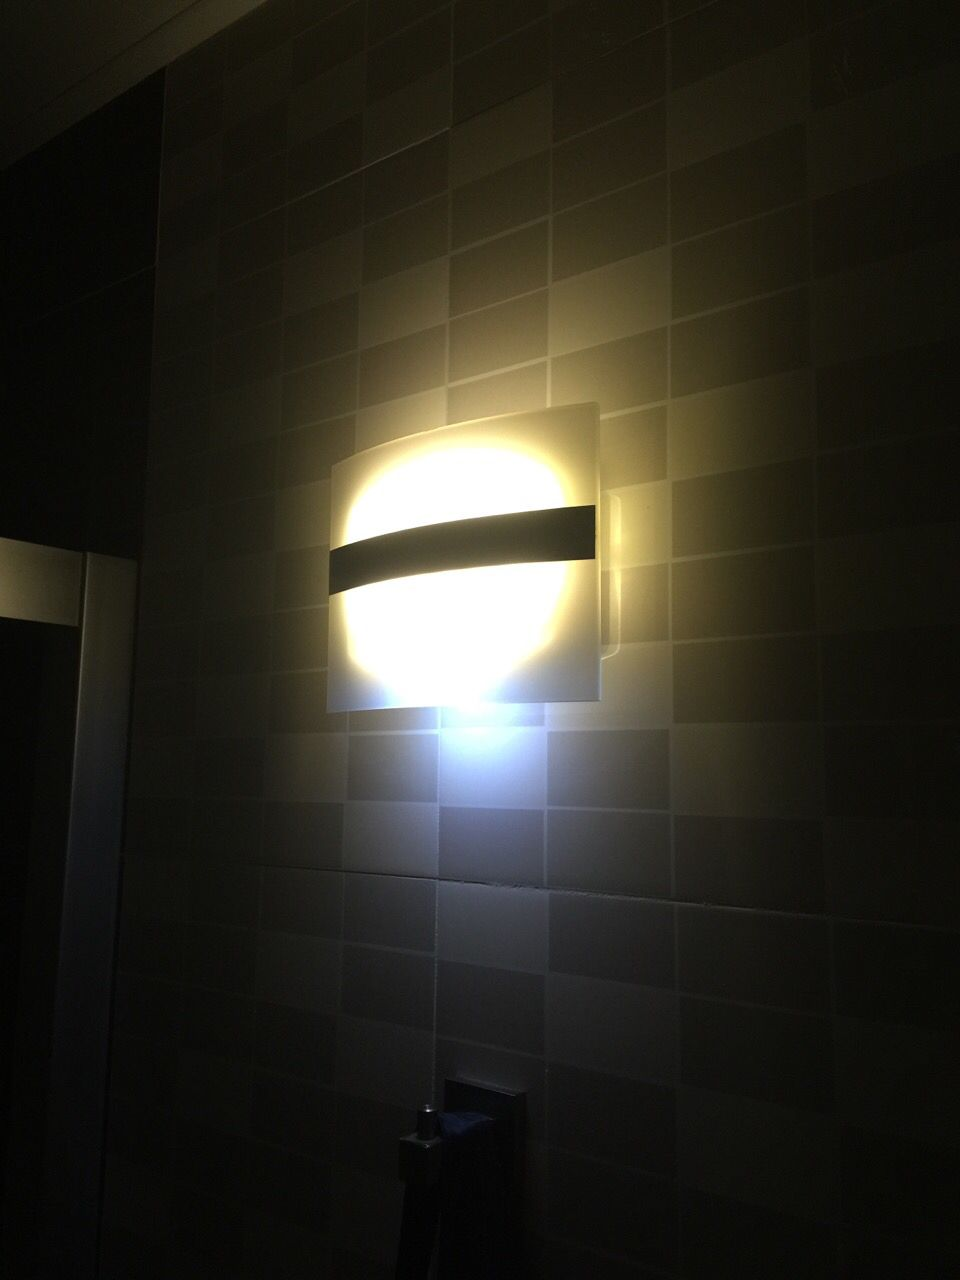 LED lamp adoption for operated wall lamps